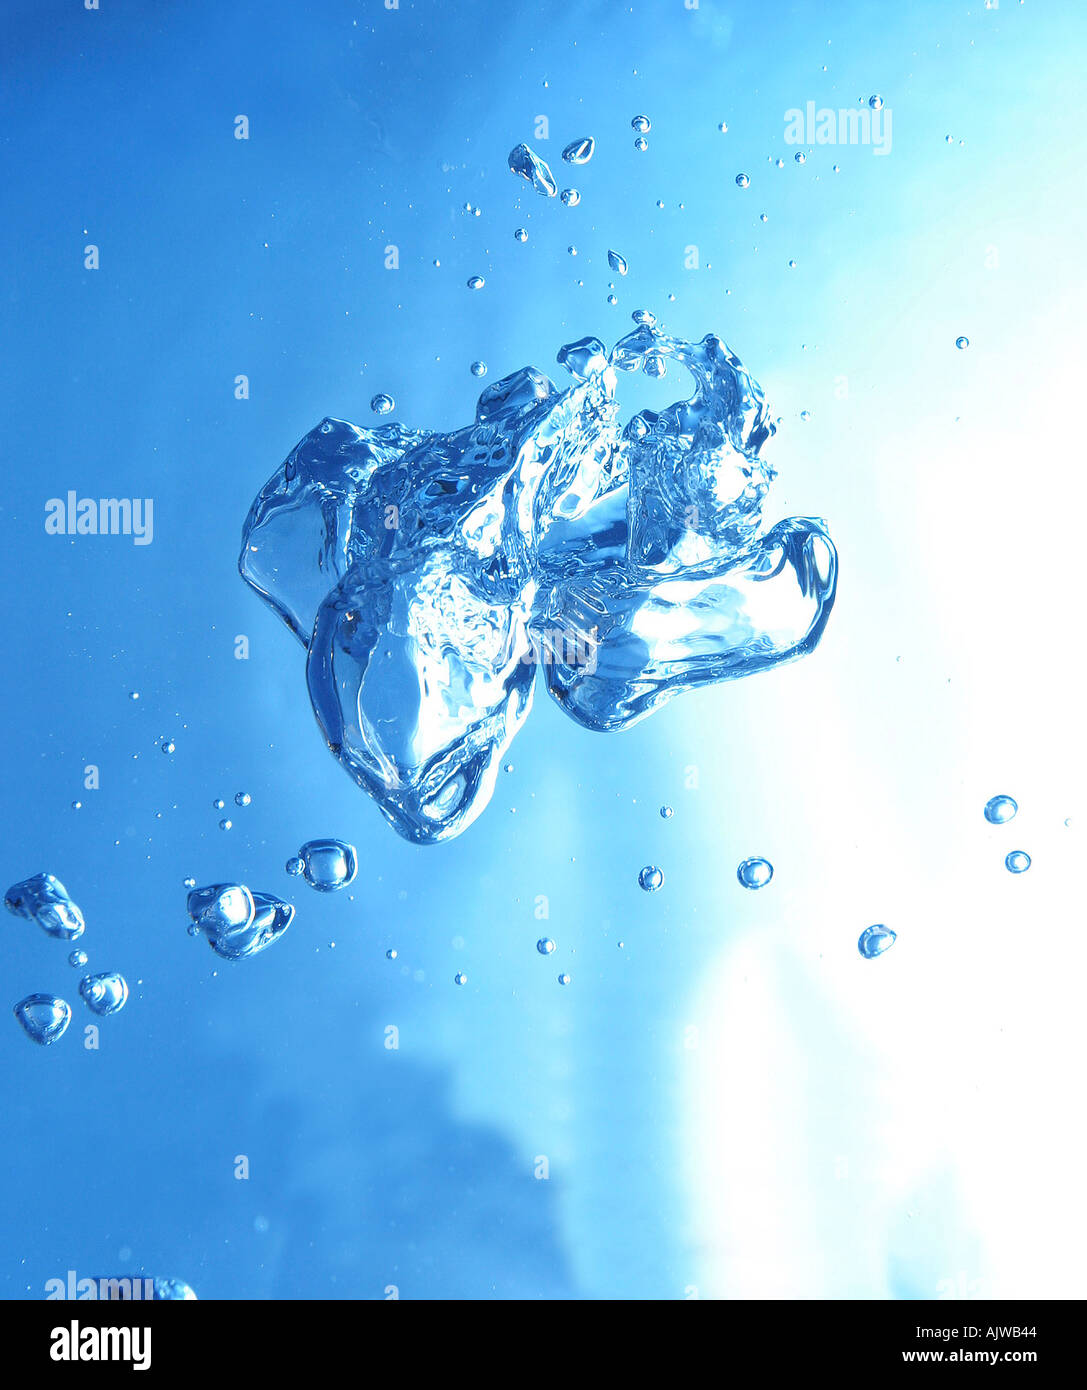 bubble in the shape of a bird - Stock Image